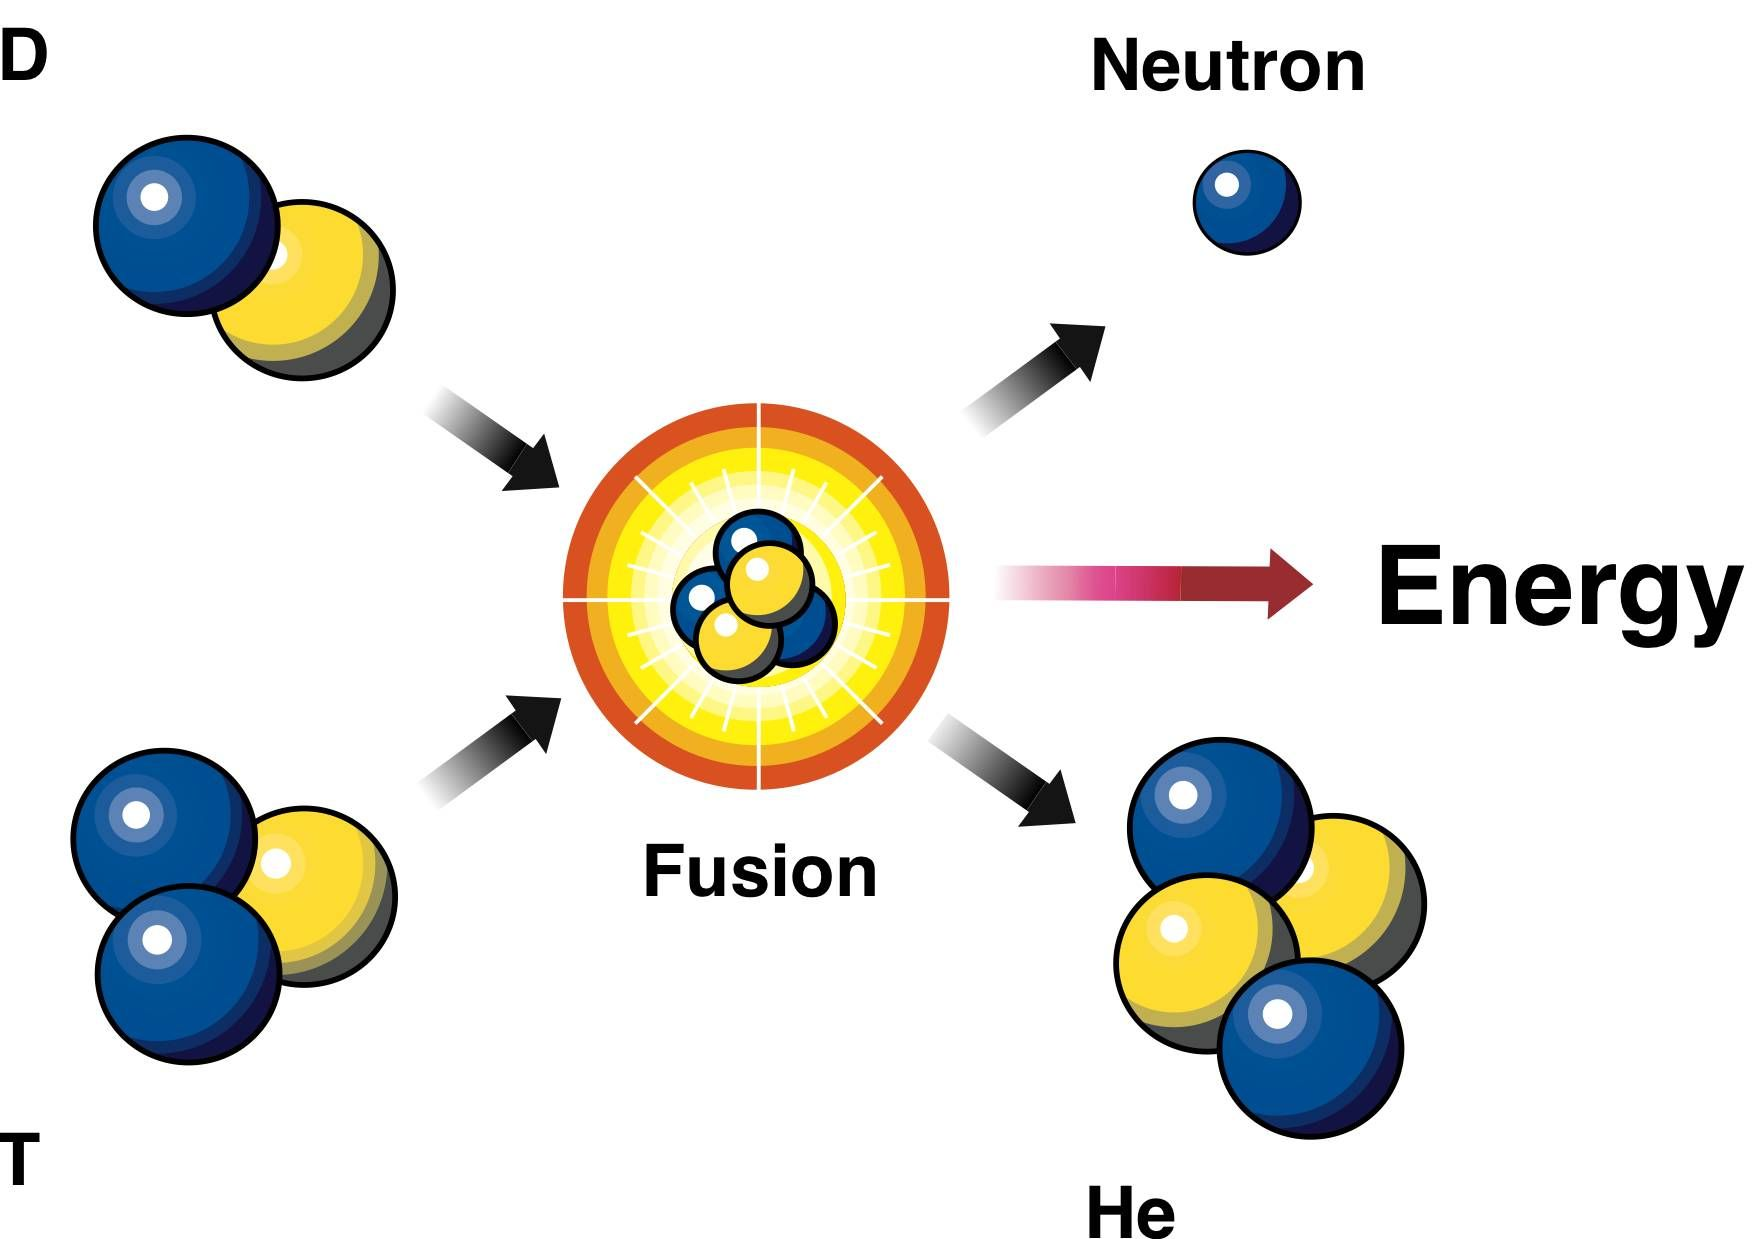 Cold fusion fusion nuclear weapons nuclear safety nuclear fusion 2 isotopes of light elements h forced together at high temperatures till they fuse to form a heavier nucleus happens in the sun pooptronica Image collections